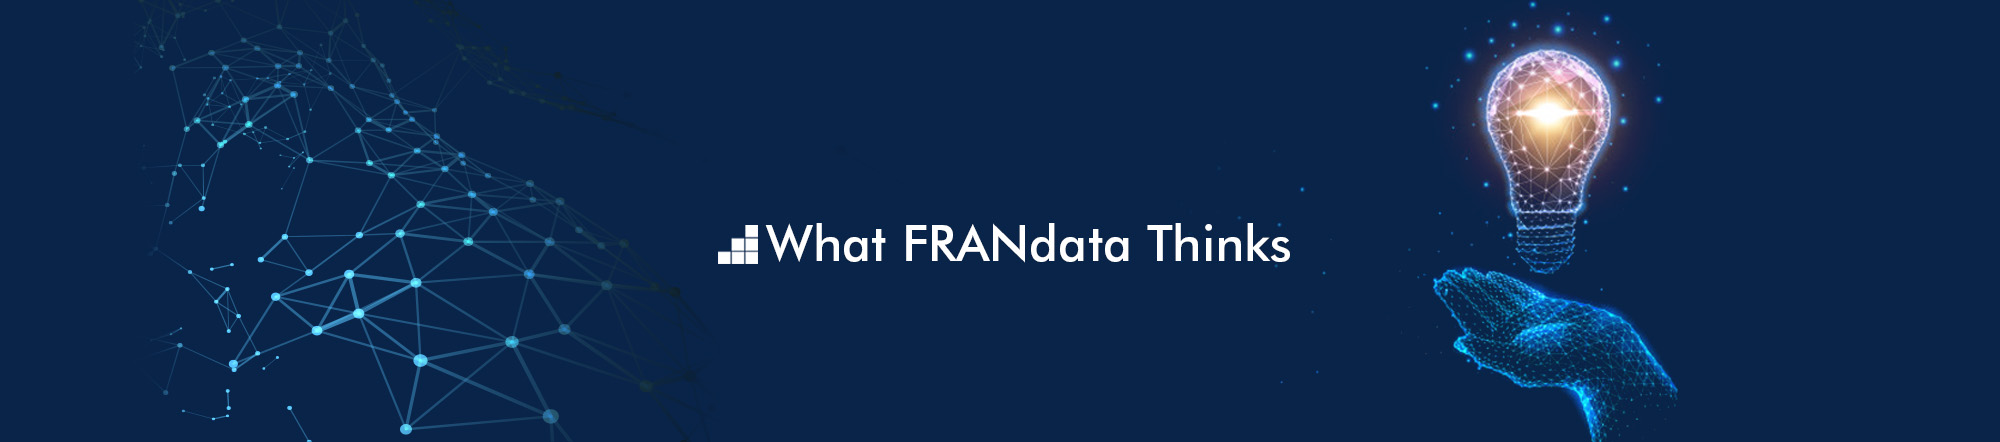 What FRANdata Thinks